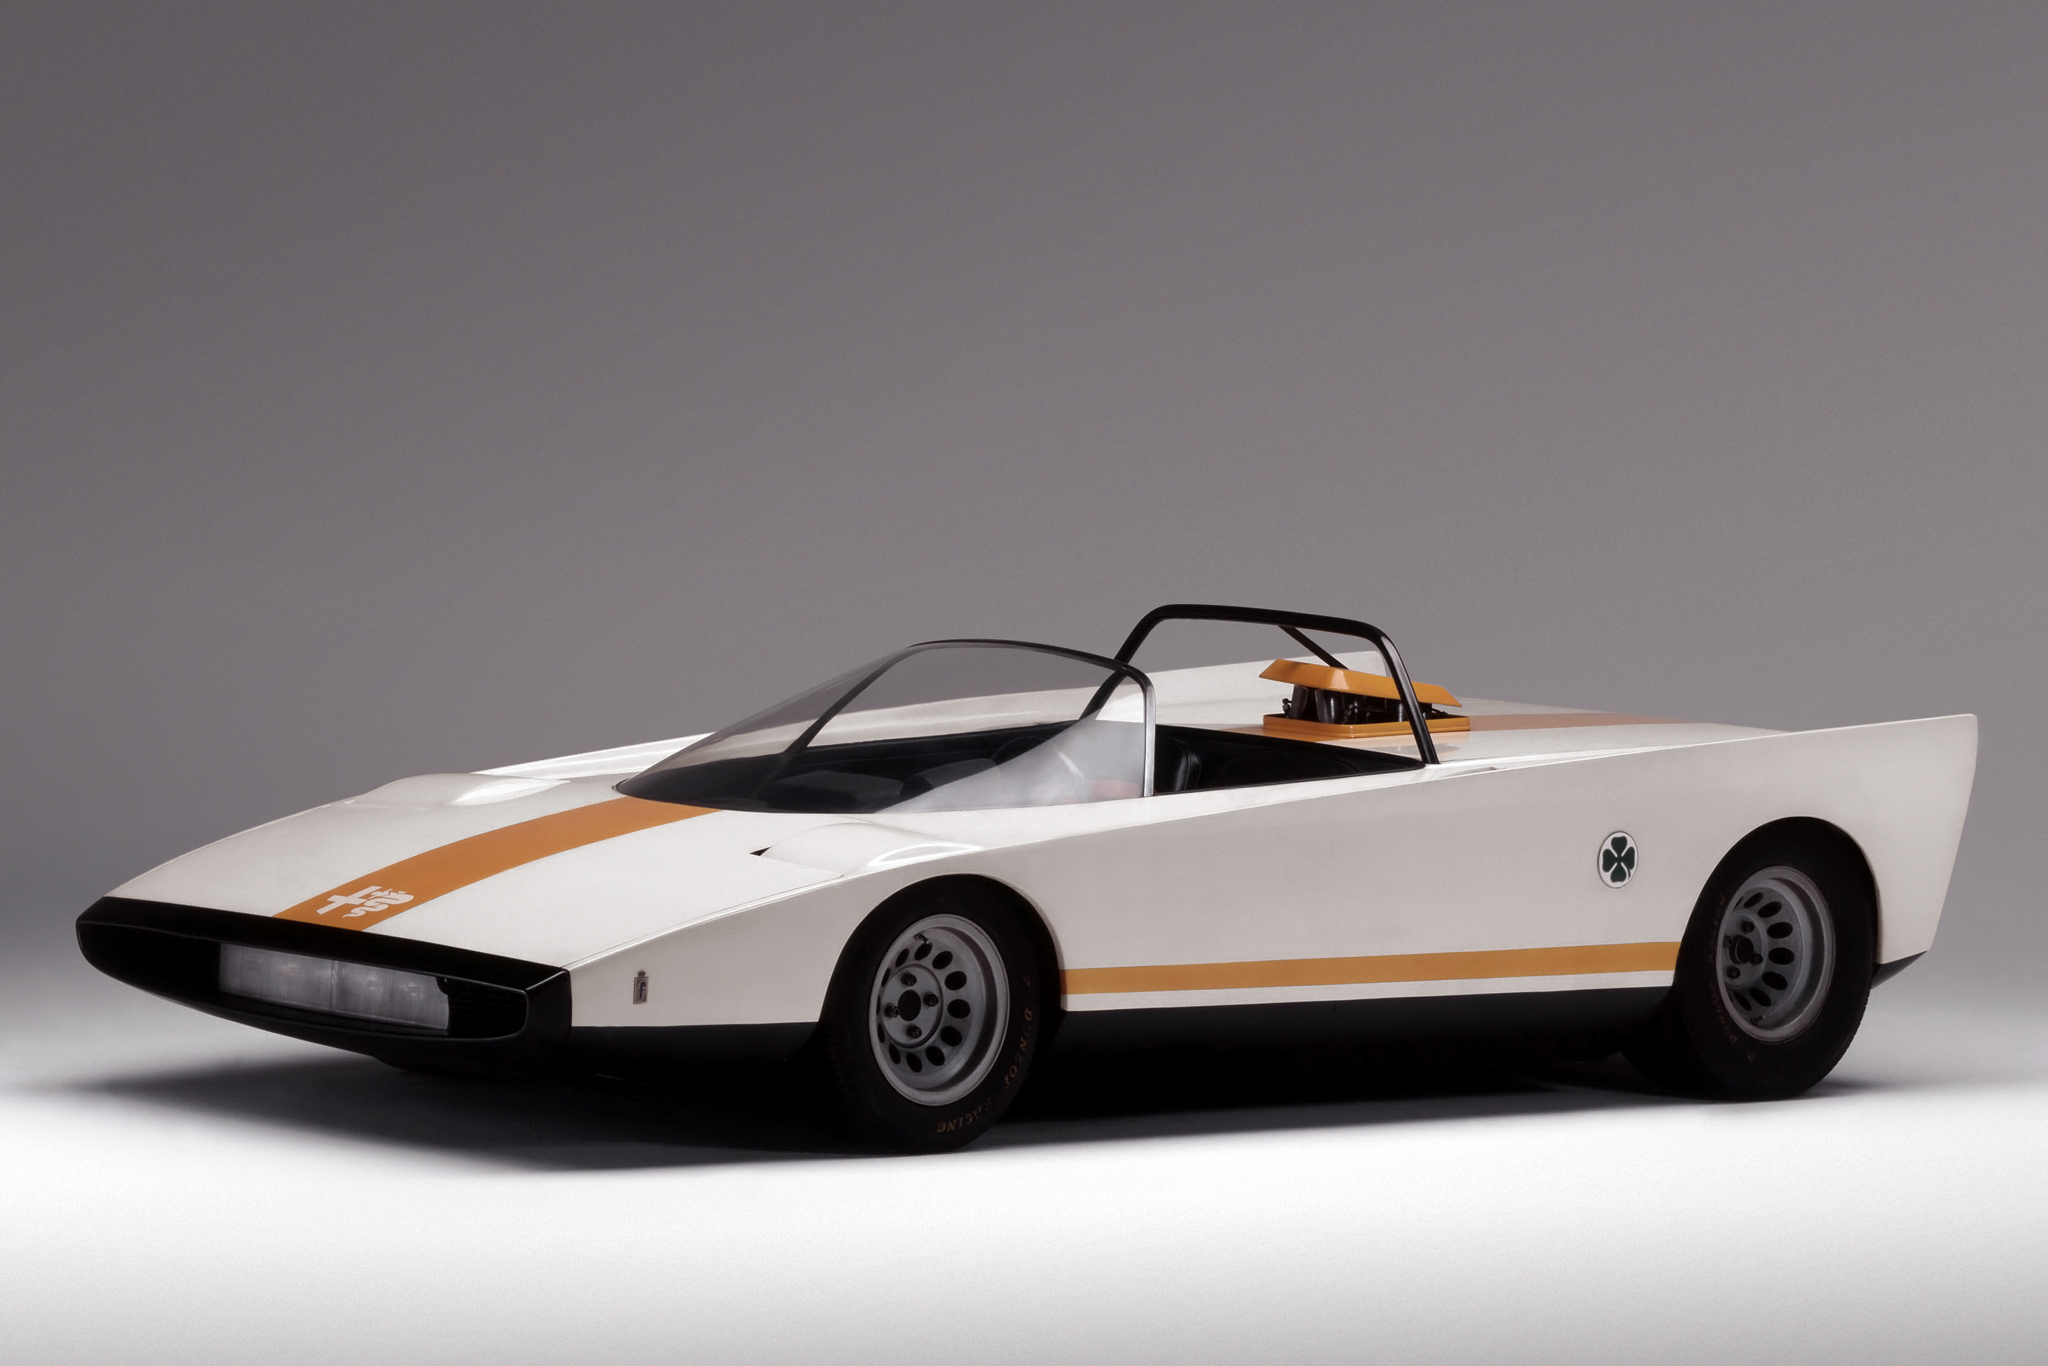 1969 Concept - Cuneo Tipo 33 based